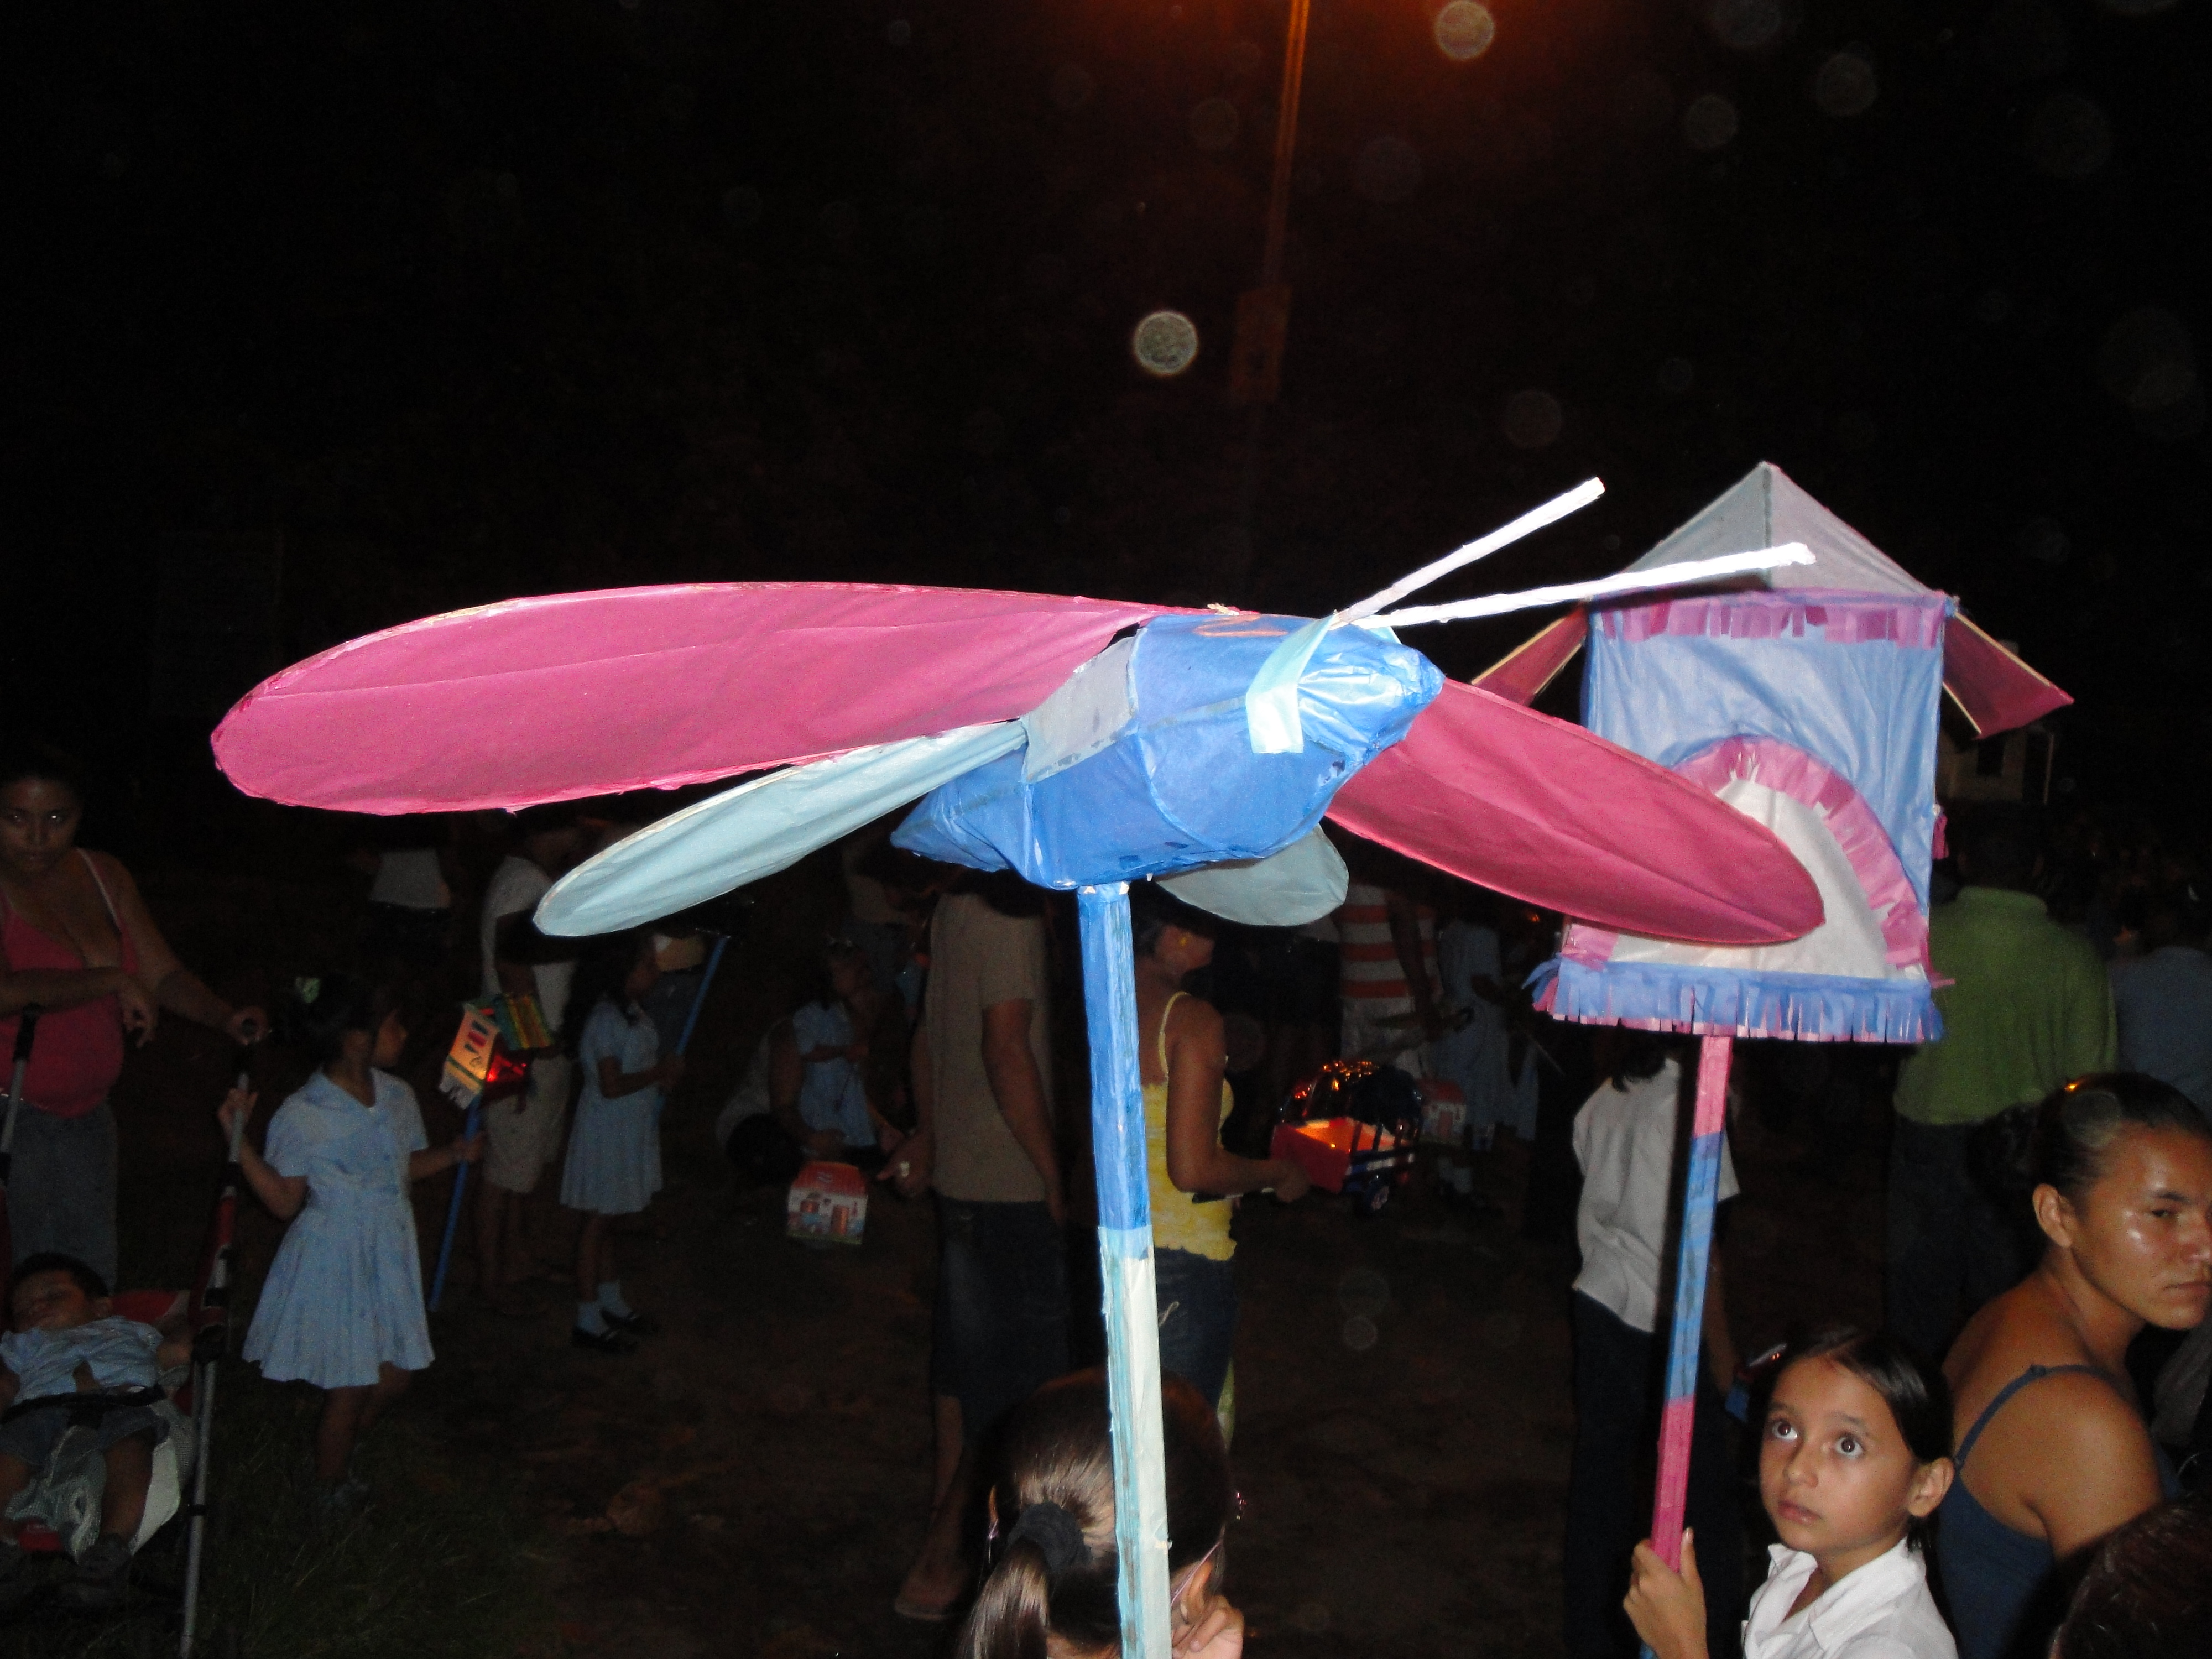 Independence day eve performances in Tortuguero. Rosebell Kagumire photo